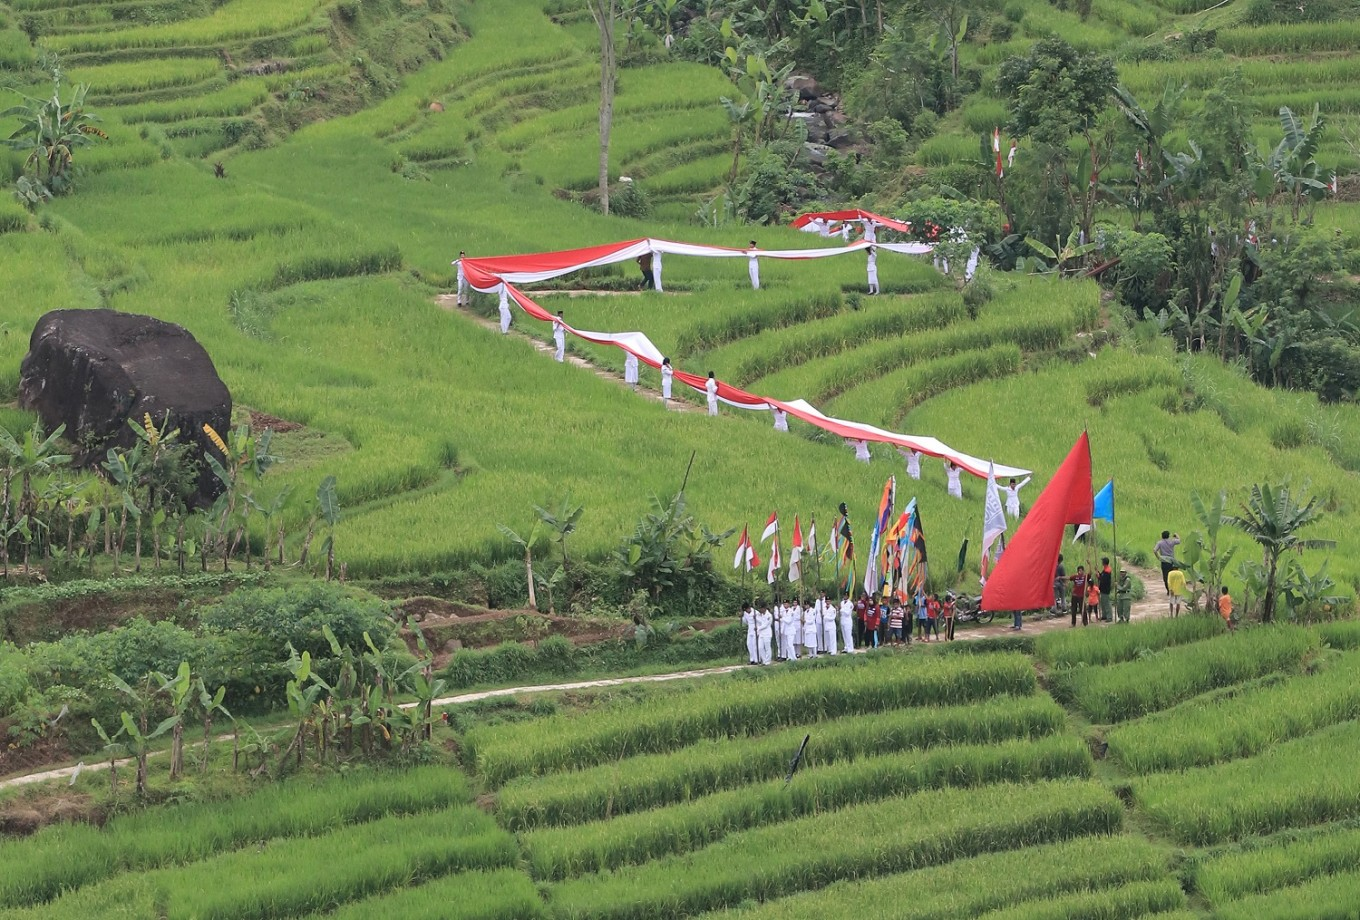 A flag 15 meters long is carried during the Mount Lawu Flag Festival.